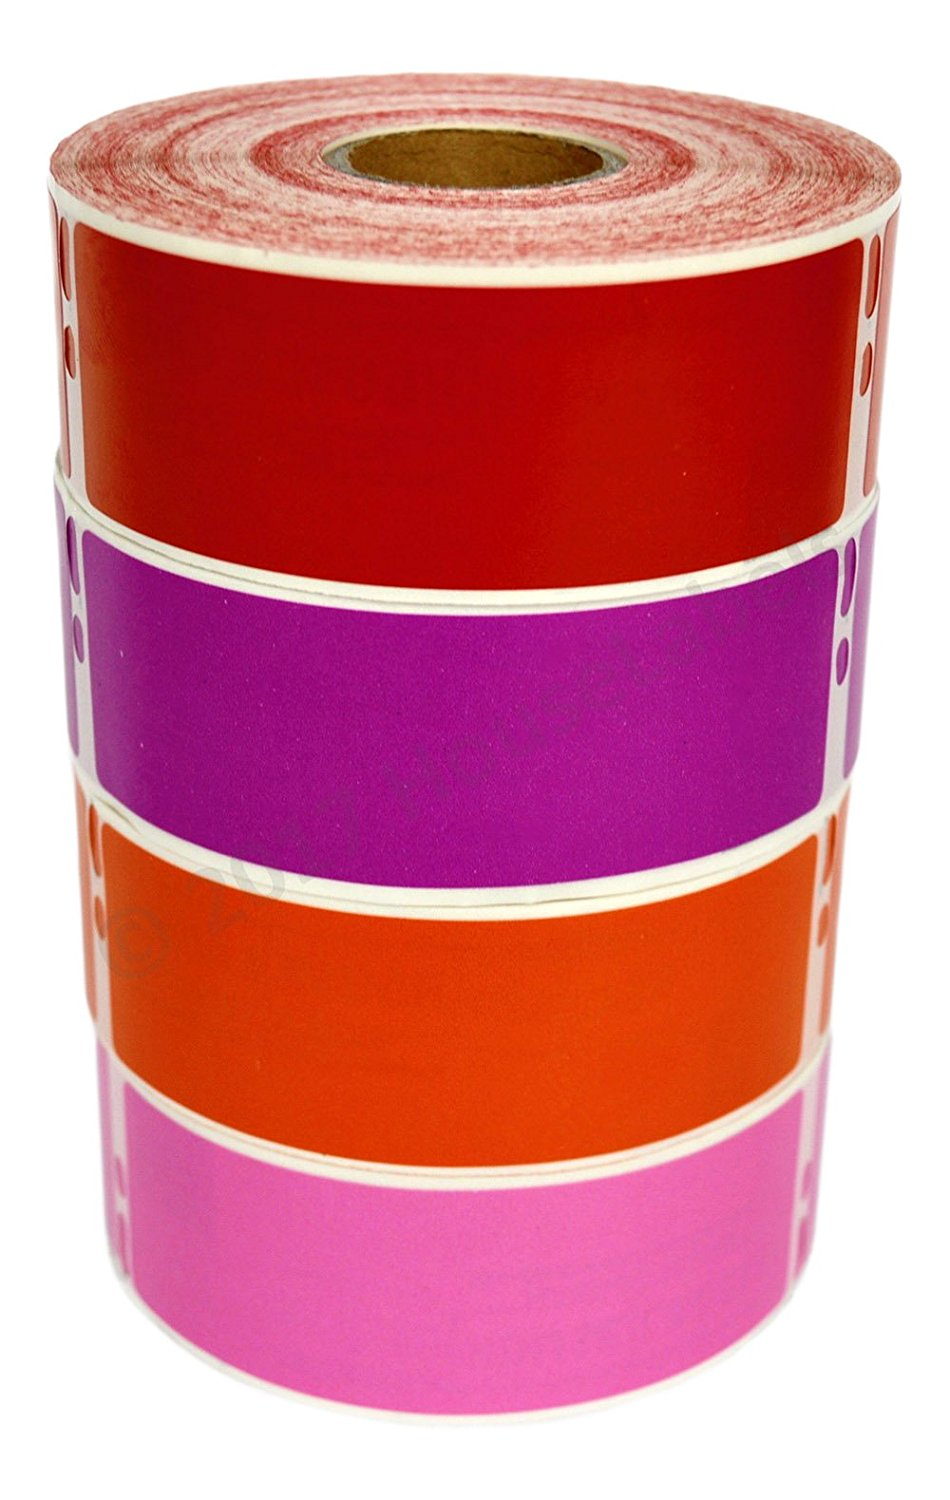 """4 Rolls; 1 Roll Of Each Color, 350 Labels Per Roll of DYMO-Compatible 30252 RED, PURPLE, ORANGE, PINK Address Labels (1-1/8"""" x 3-1/2"""") -- BPA Free!"""